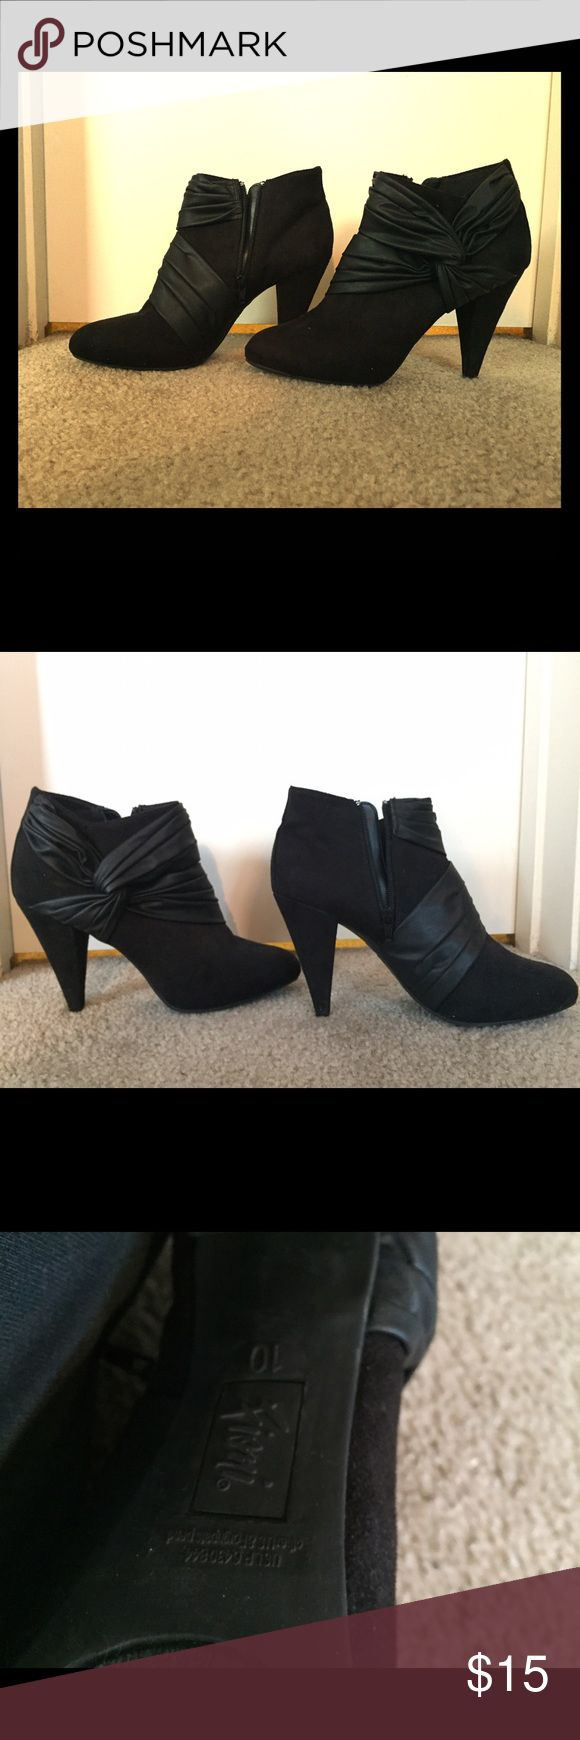 Cute black heels I have barely worn these, but they were given to me by my sister who also barely wore them. Super cute and true to size, just not my style. The heels have a little wear (shown) but otherwise great! Both zippers work perfectly. Make an offer! Fioni Shoes Heels